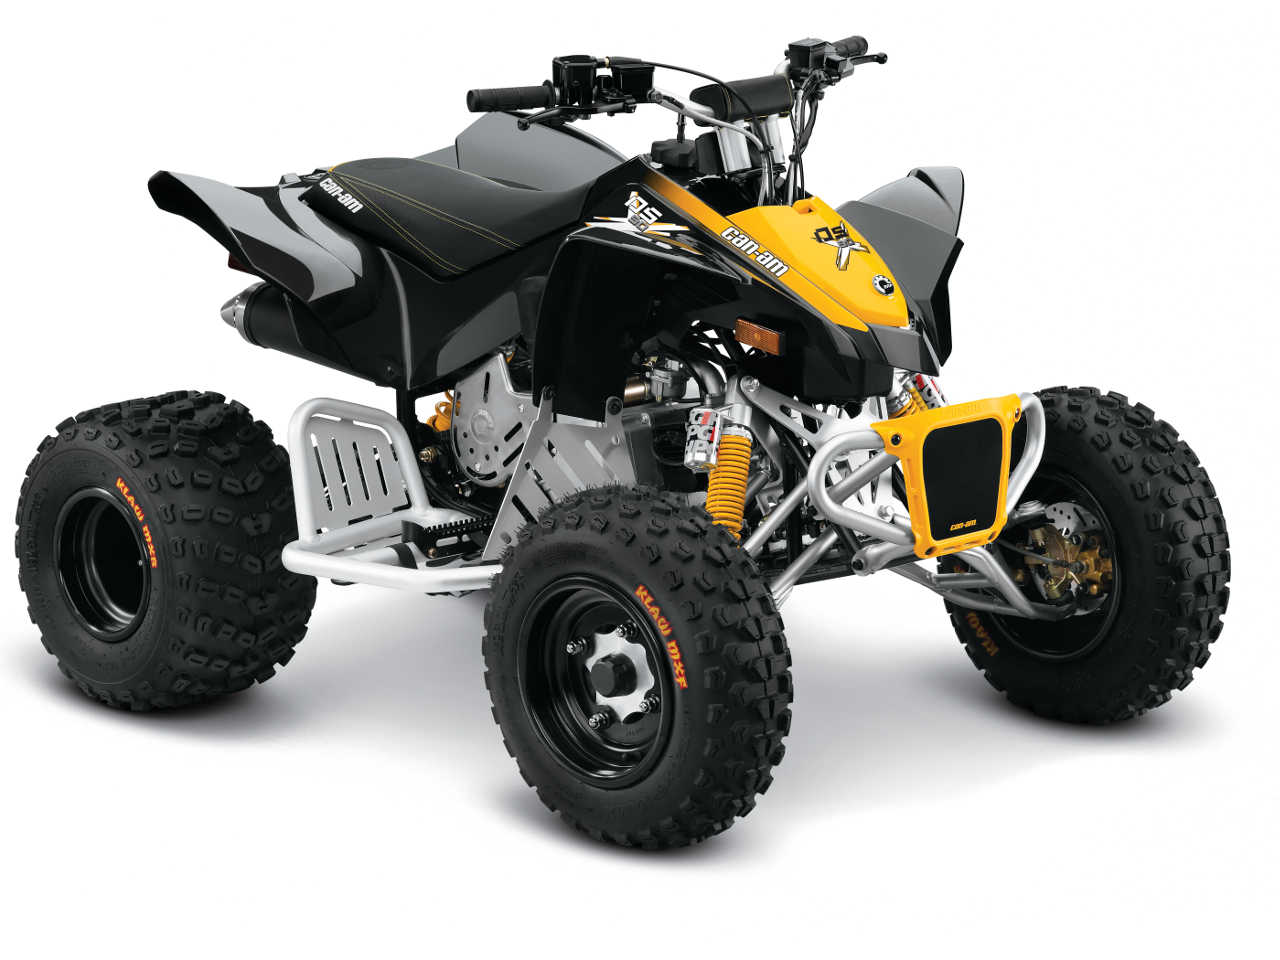 2016 Can-Am Youth ATV Models